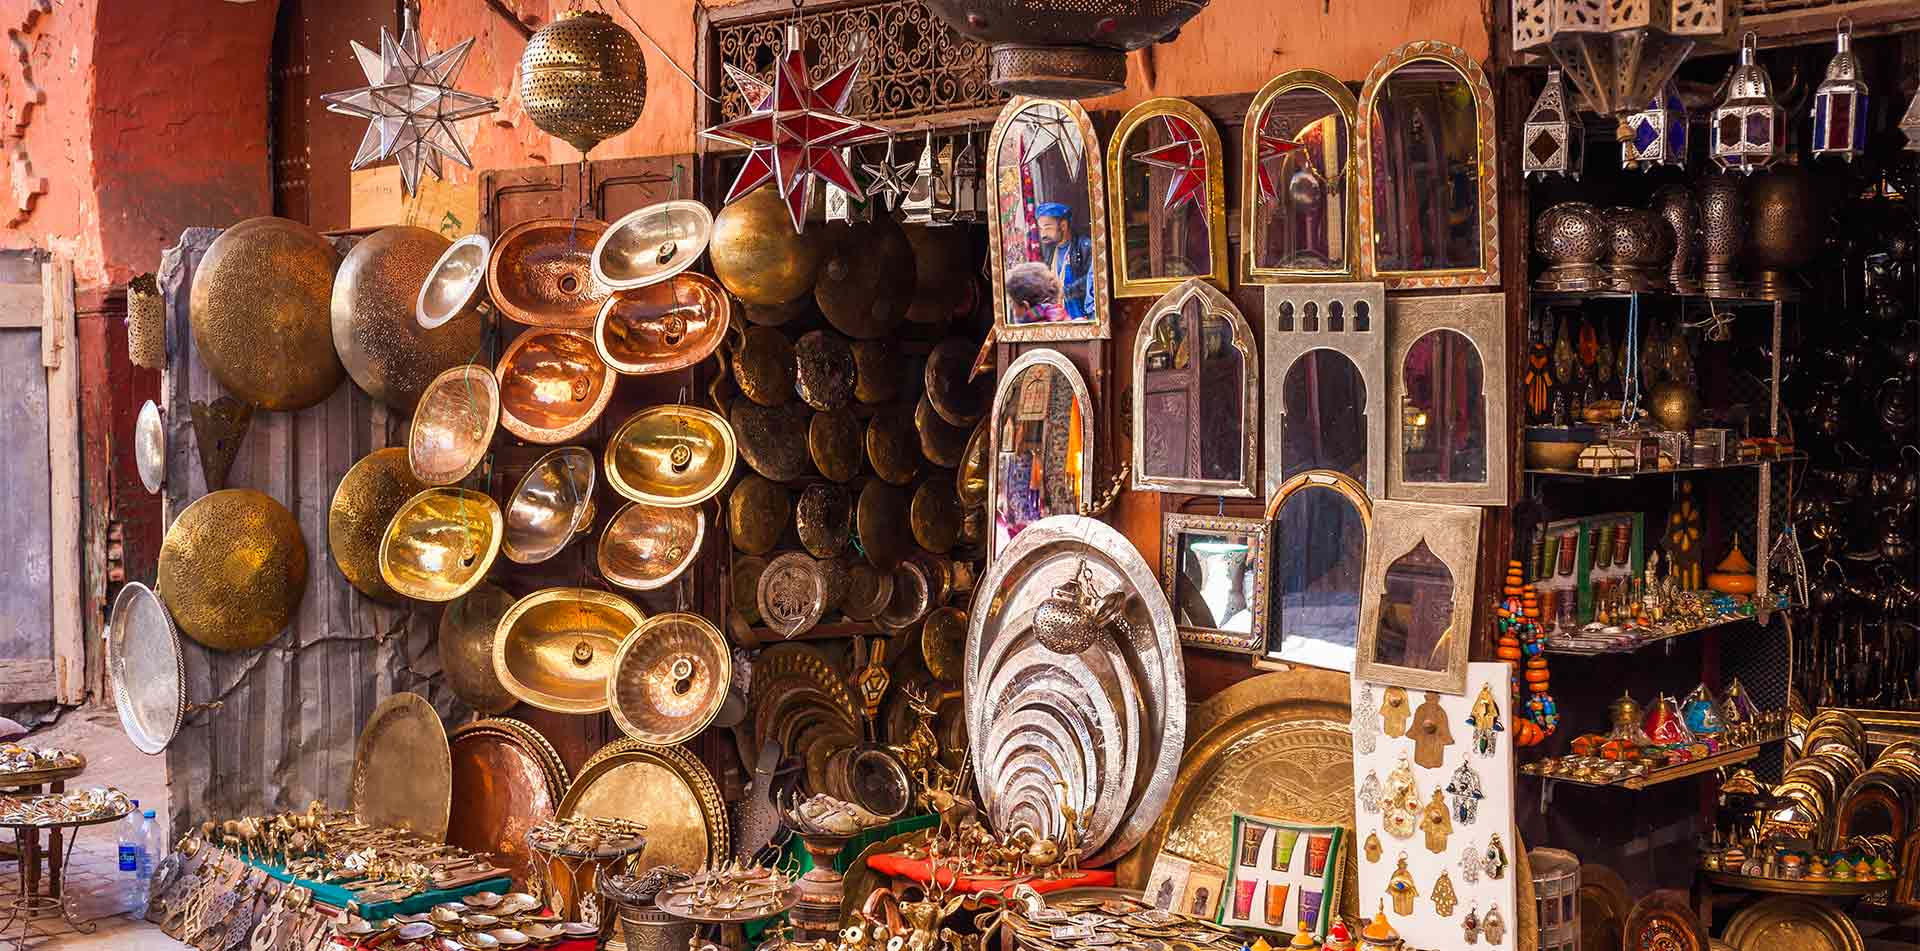 Africa Morocco Marrakesh ornate metalwork decorative souvenirs for sale in souk - luxury vacation destinations